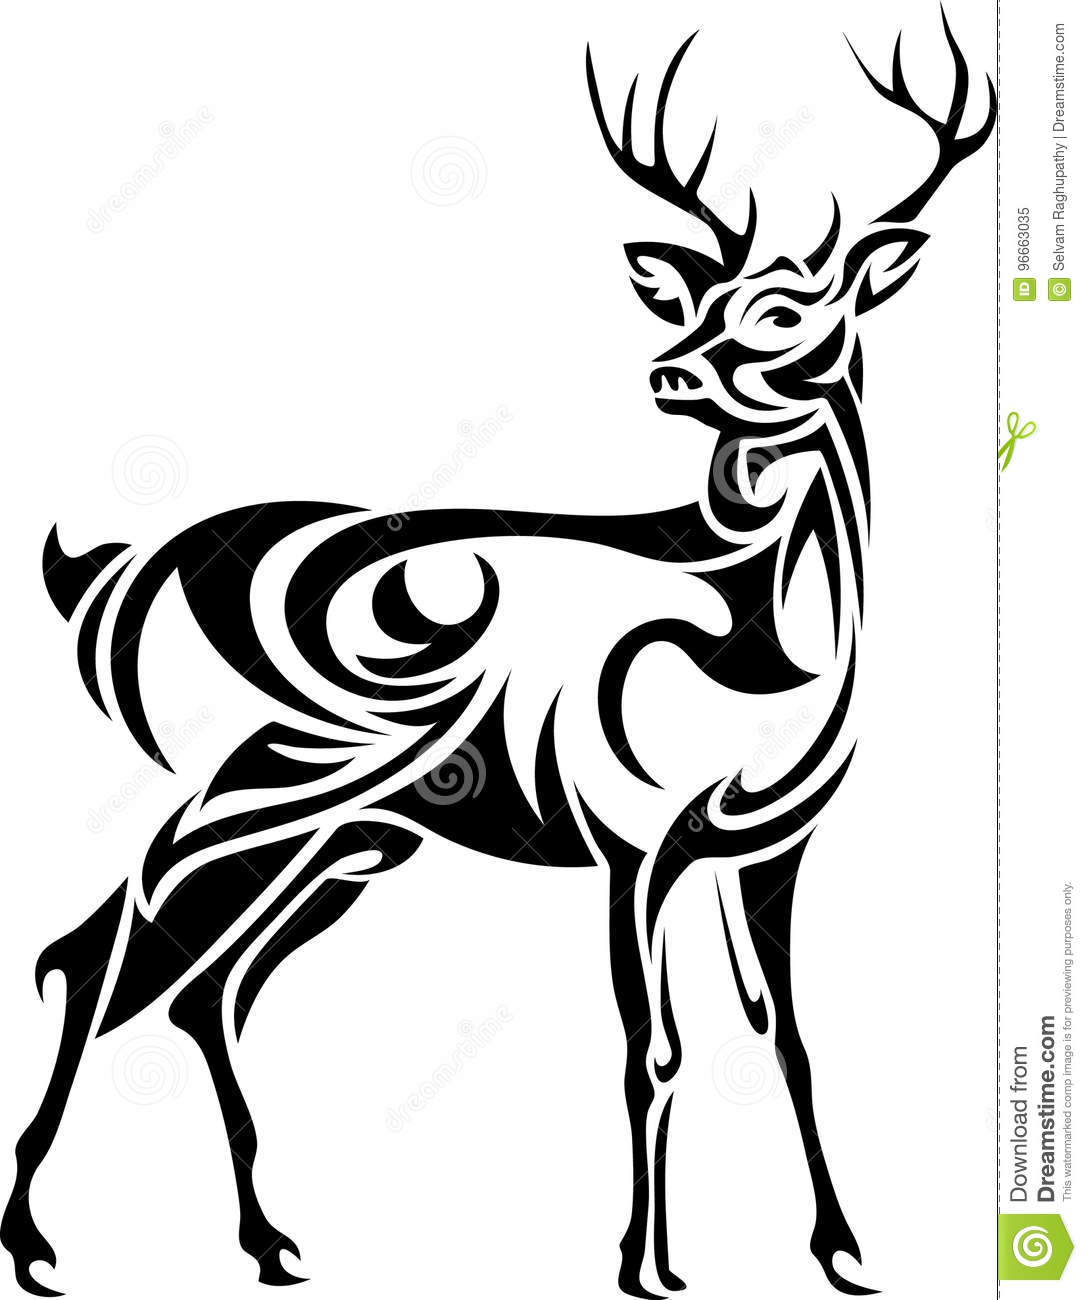 designed stag line art